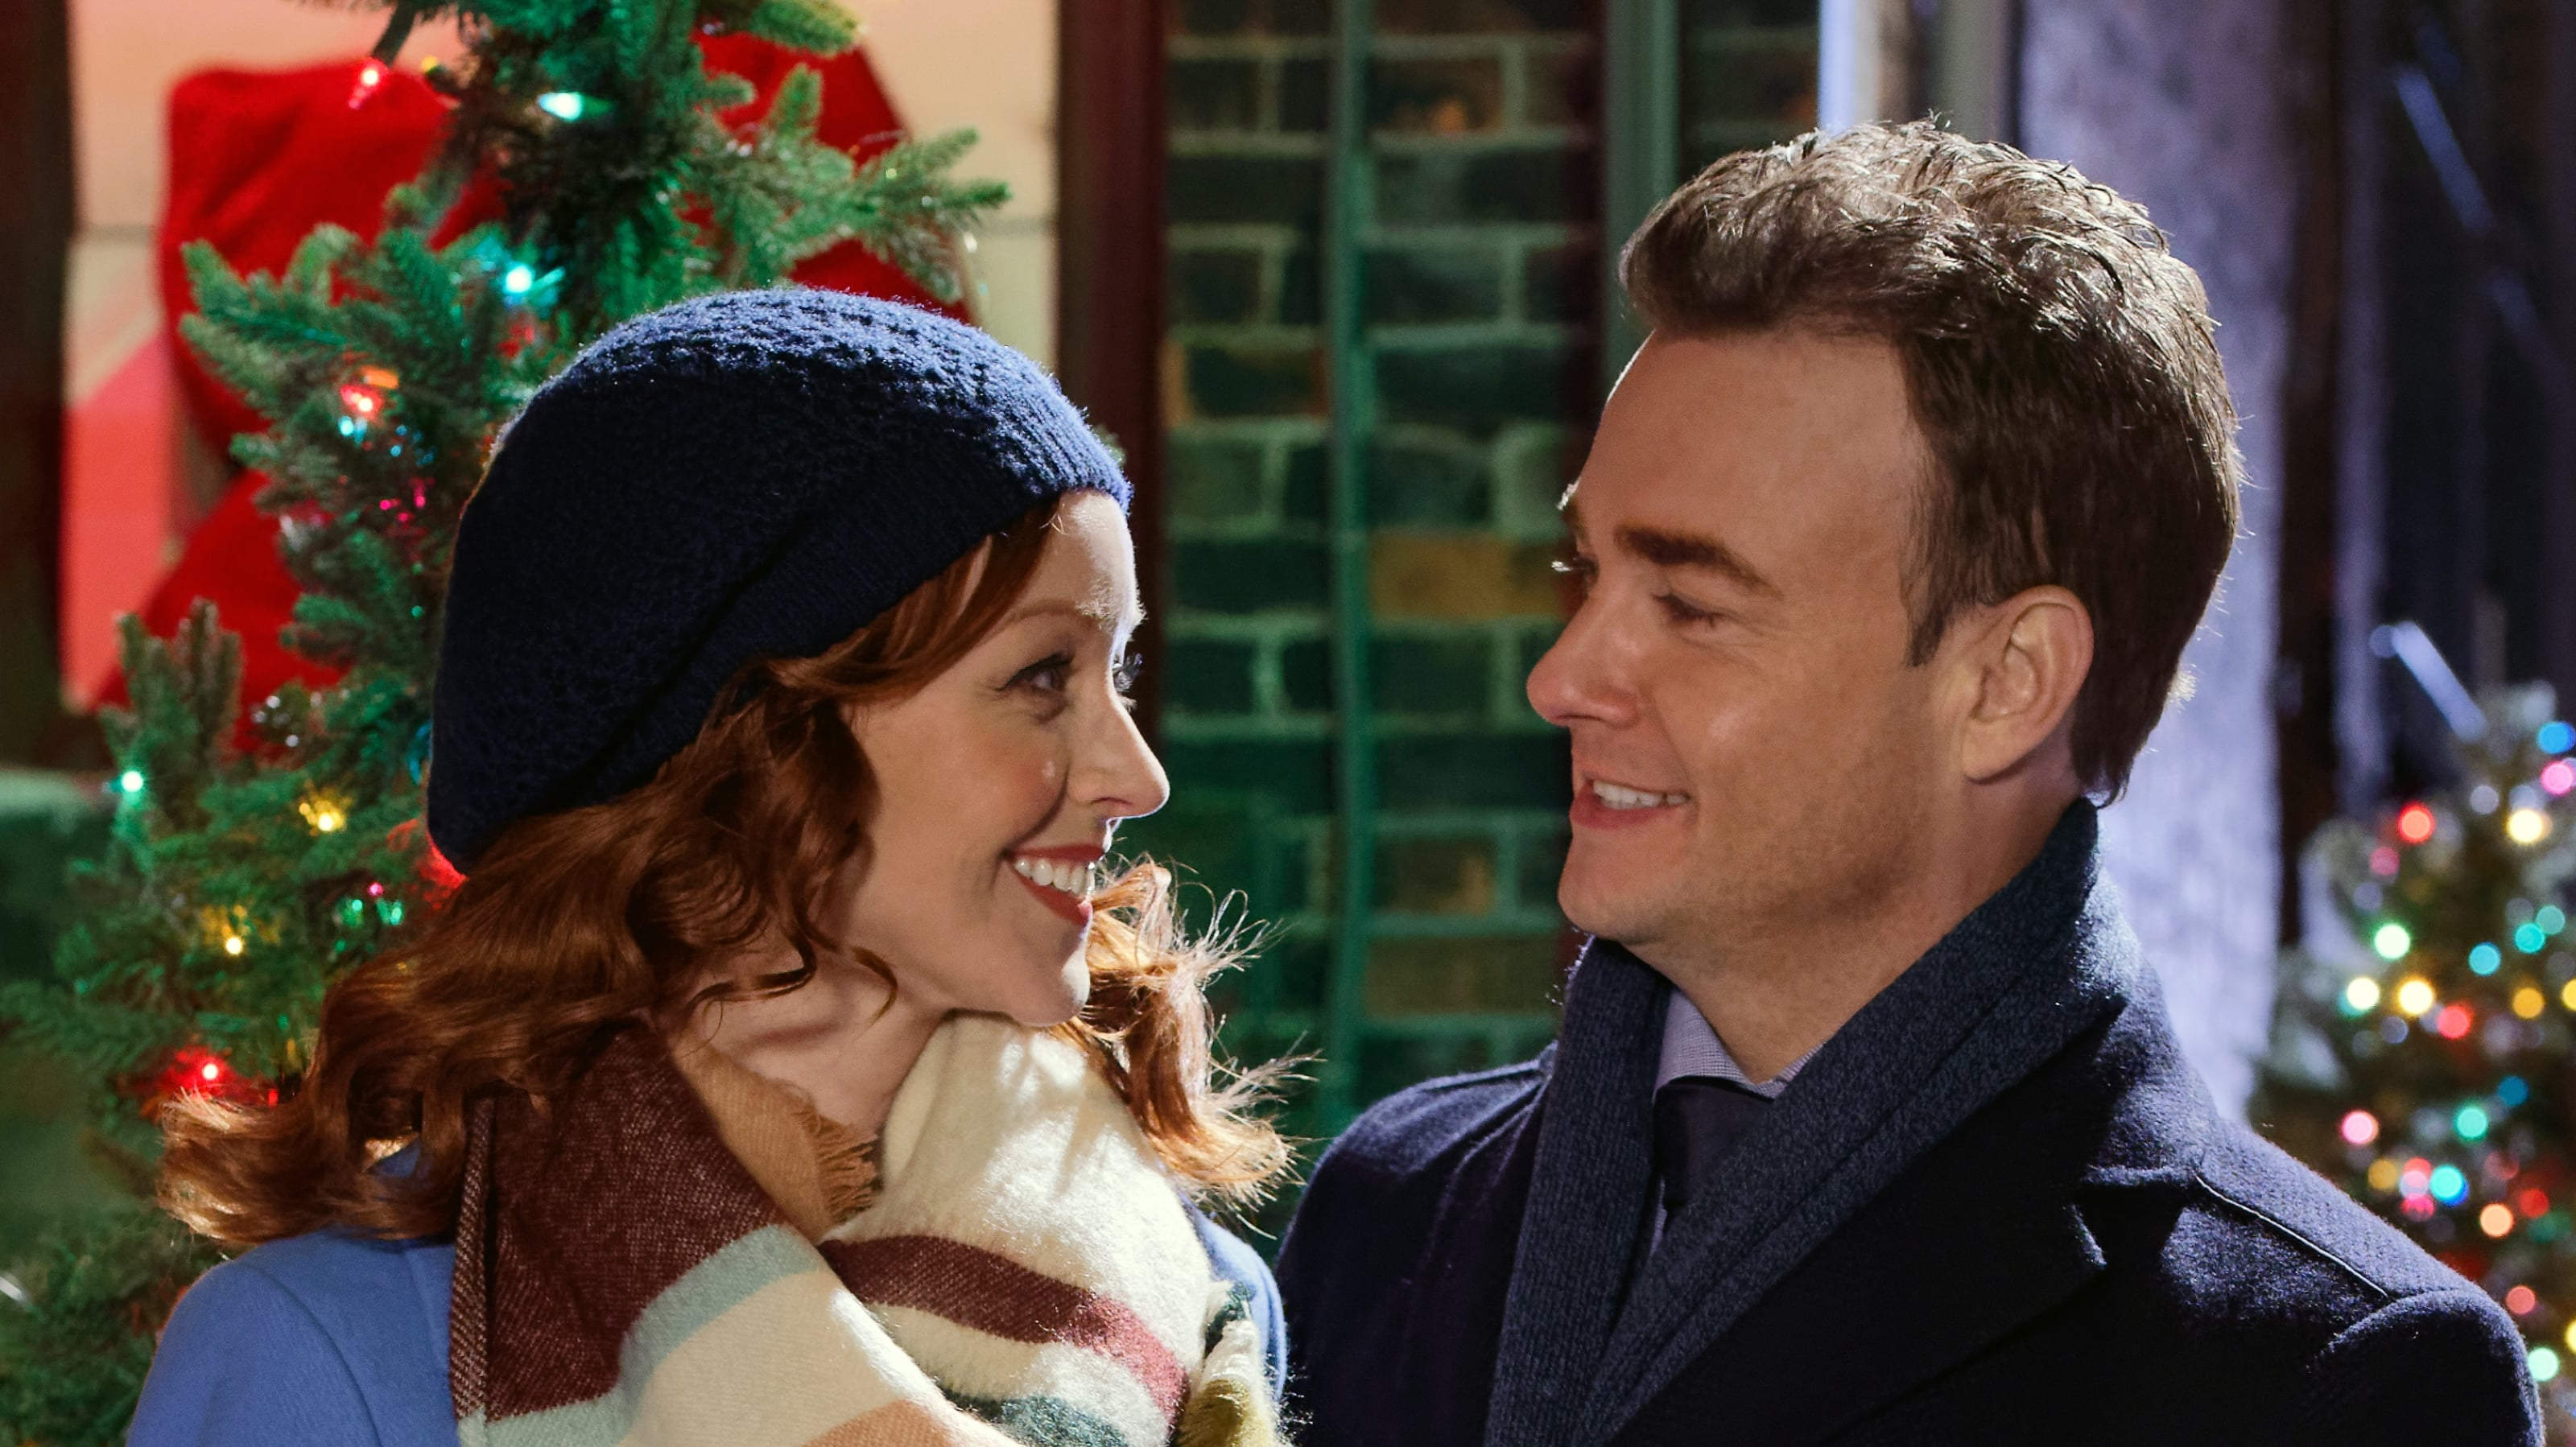 Sound Of Christmas.Sound Of Christmas 2016 Full Hd Movies To Watch Online